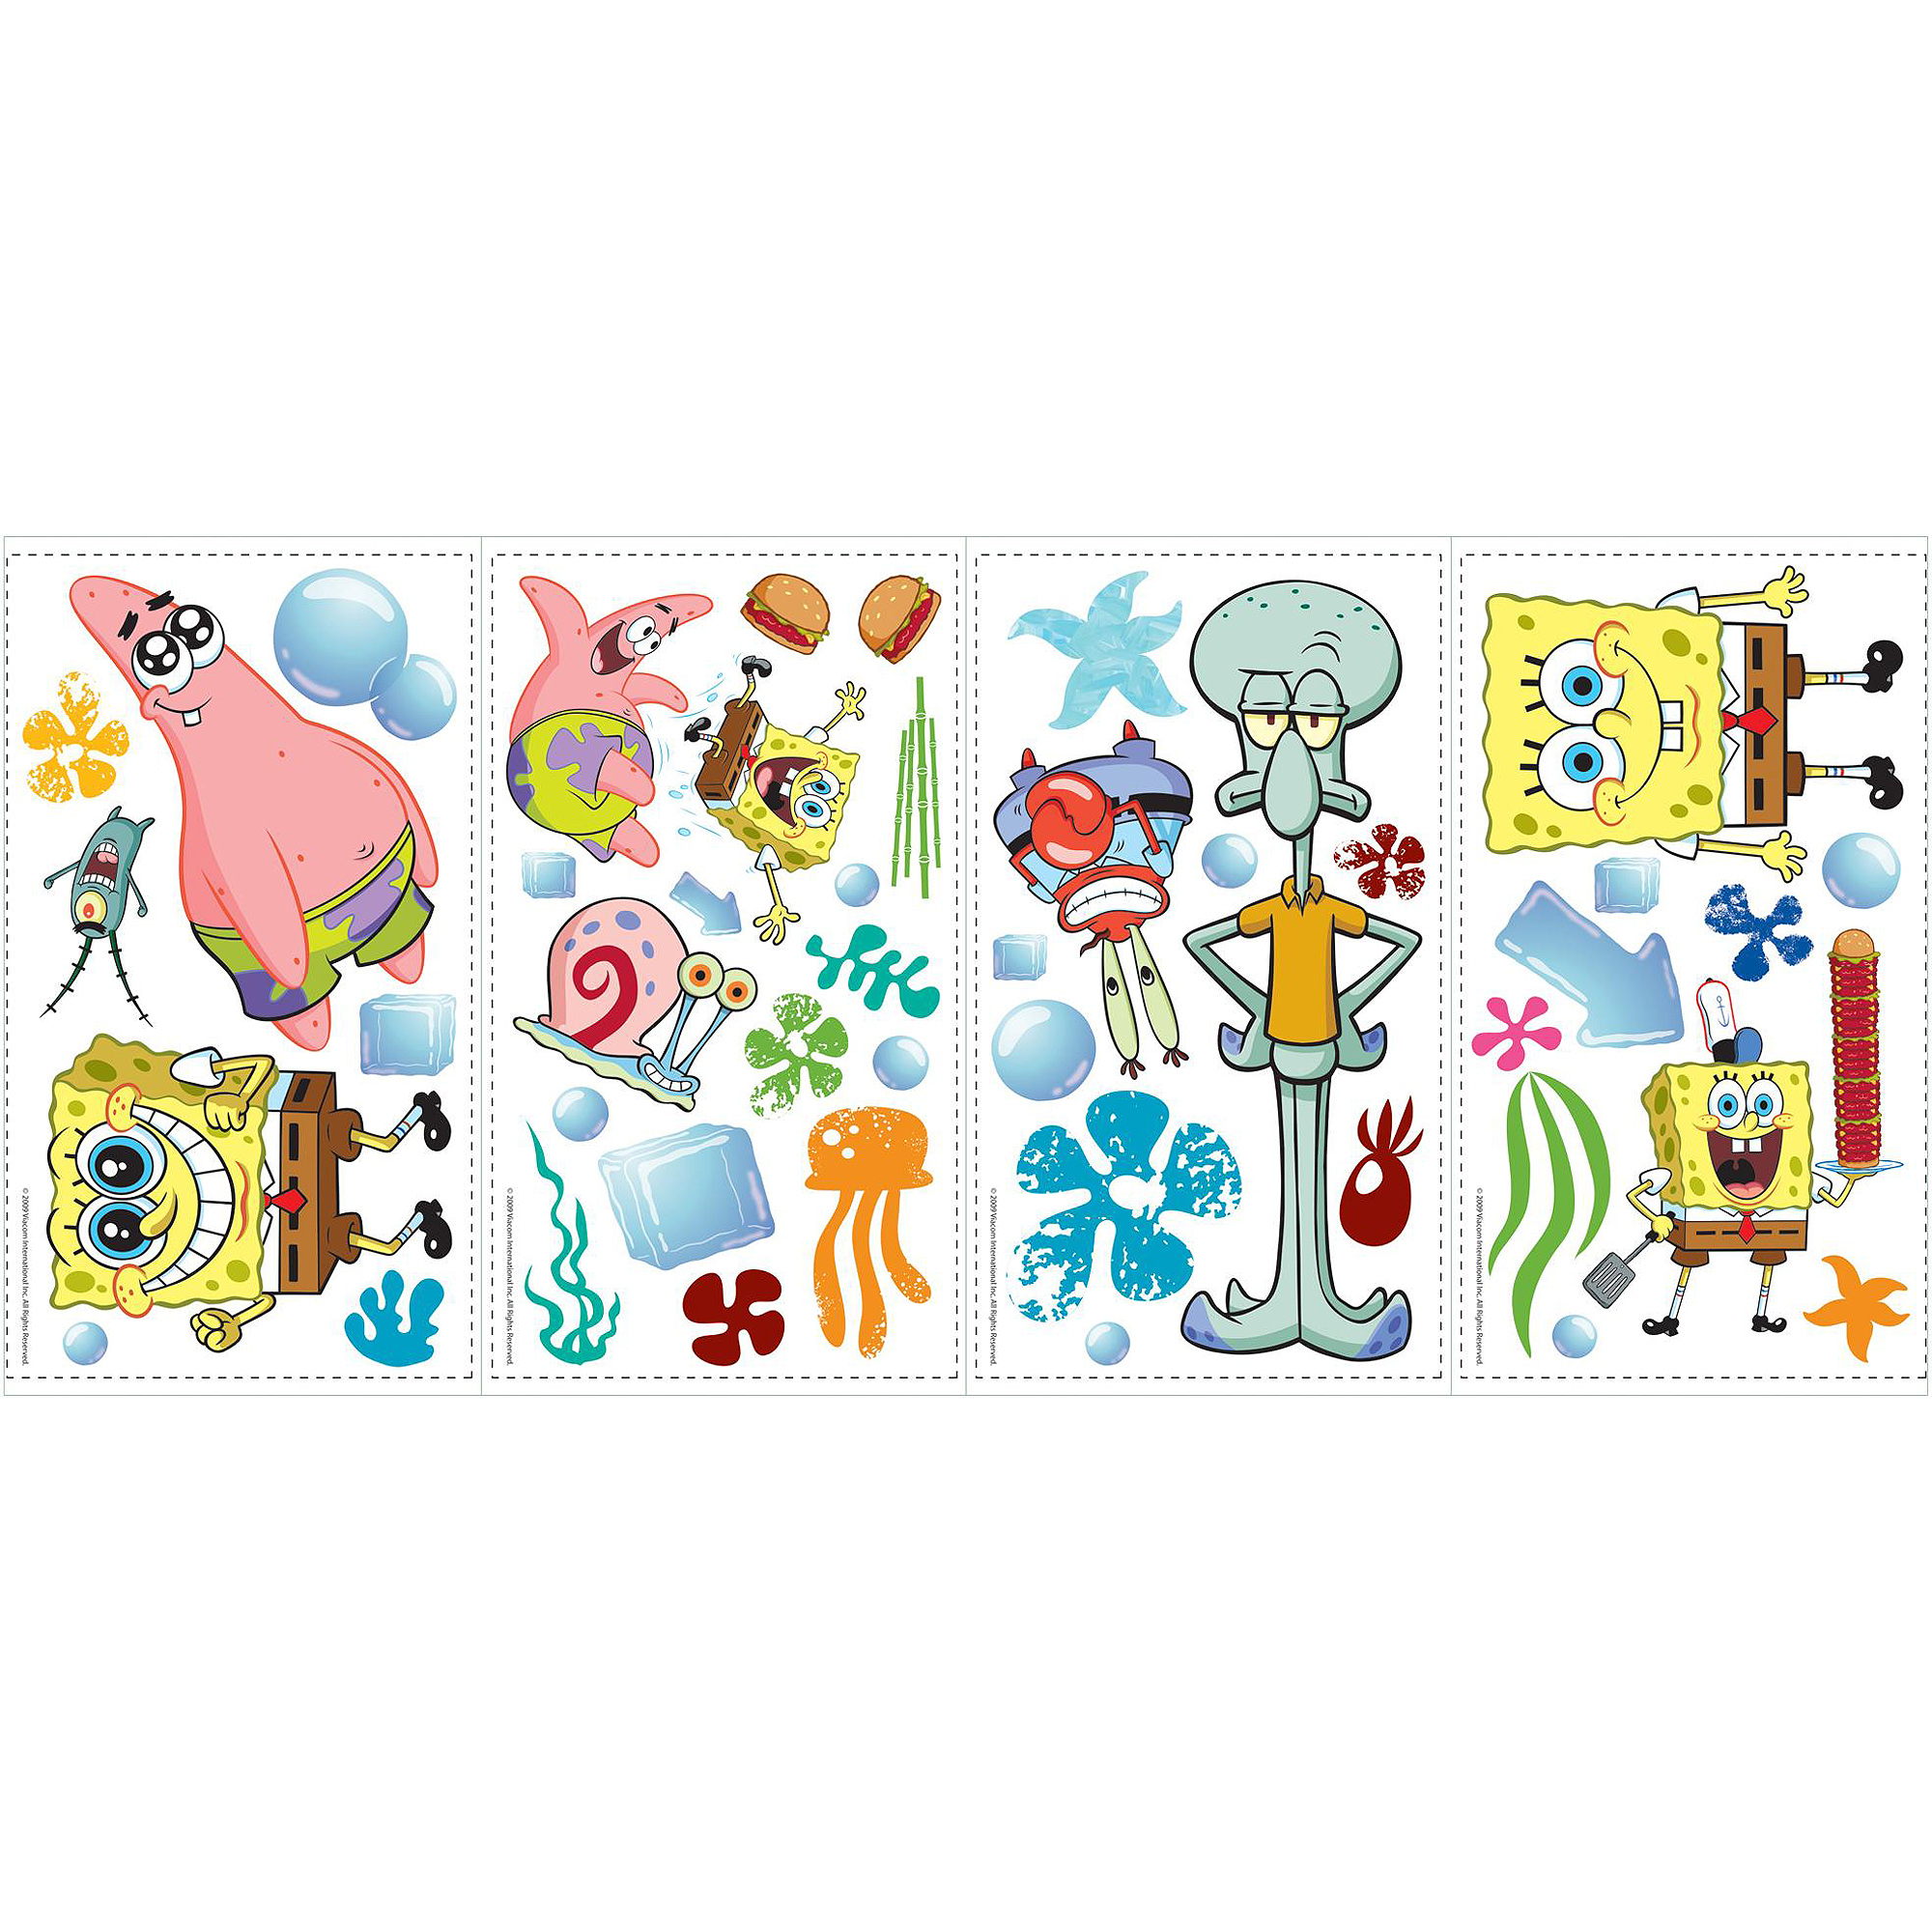 RoomMates SpongeBob SquarePants Peel and Stick Wall Decals